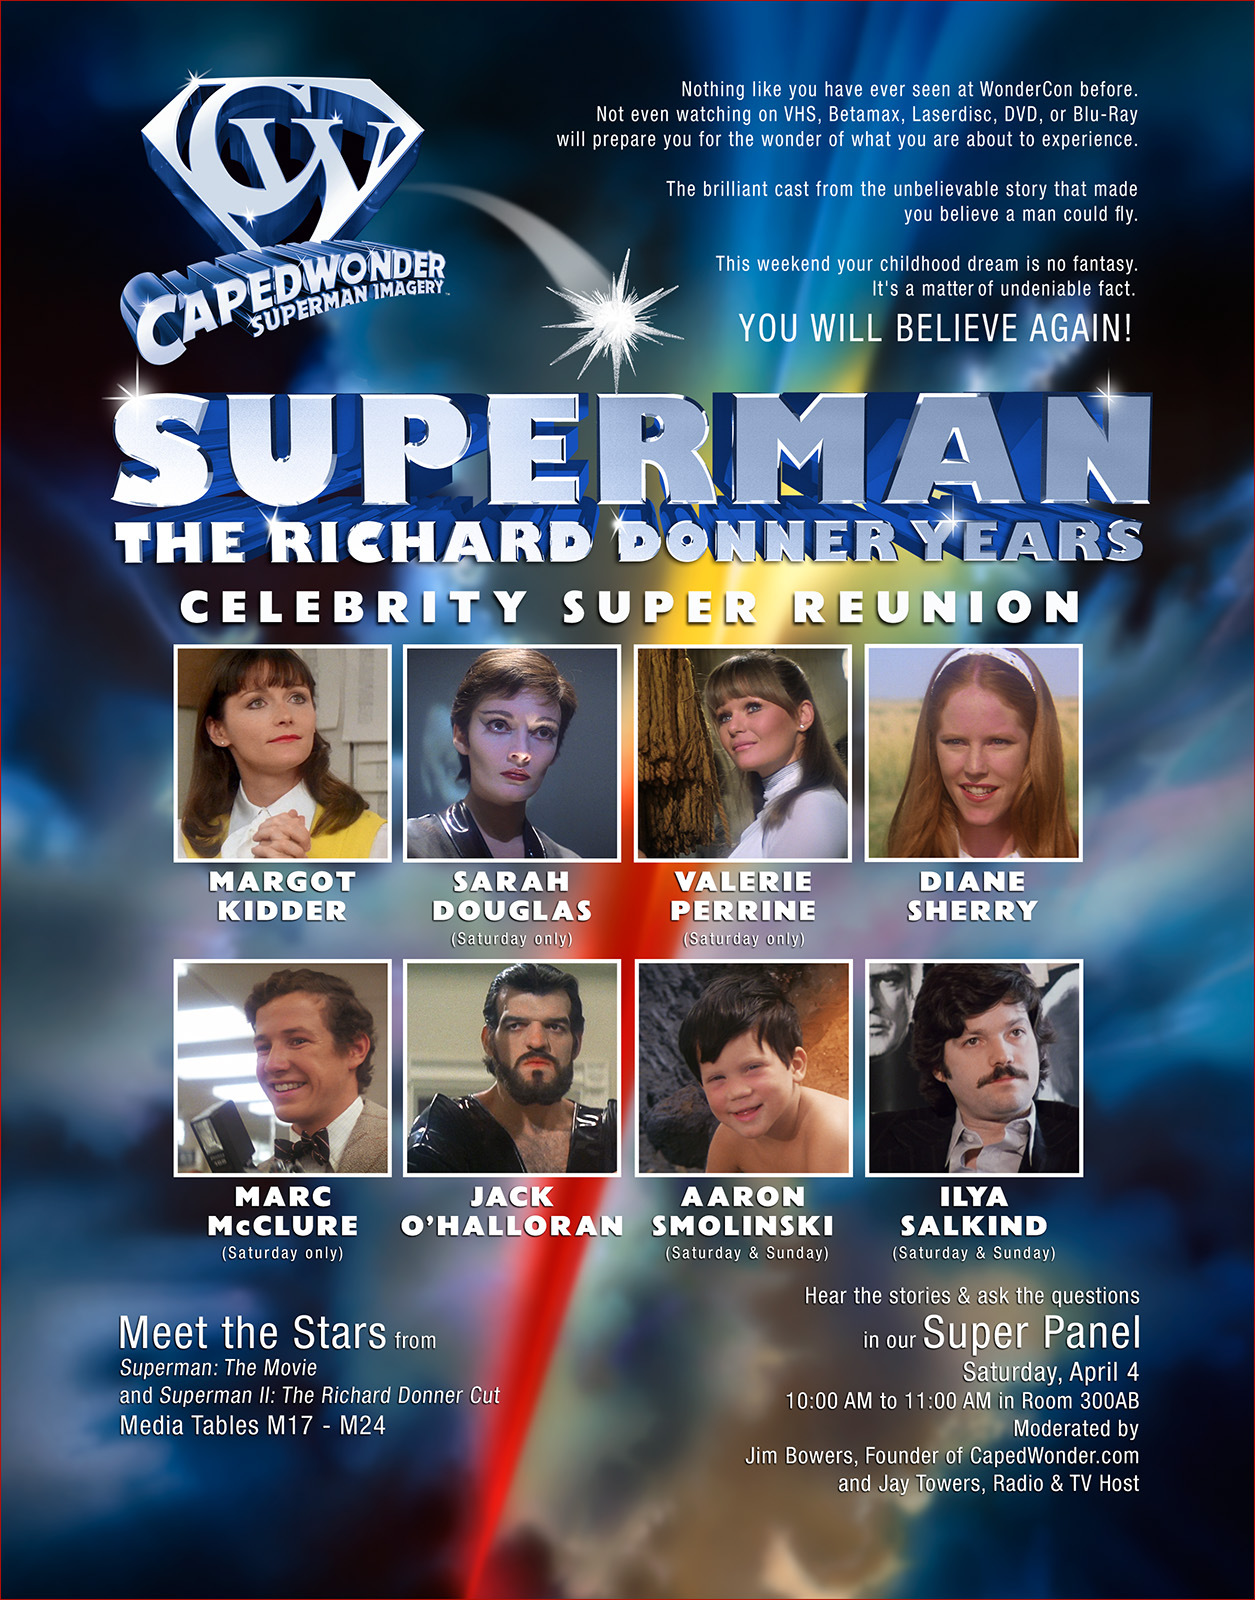 WonderCon-CW-program-book-ad(3-28-15)